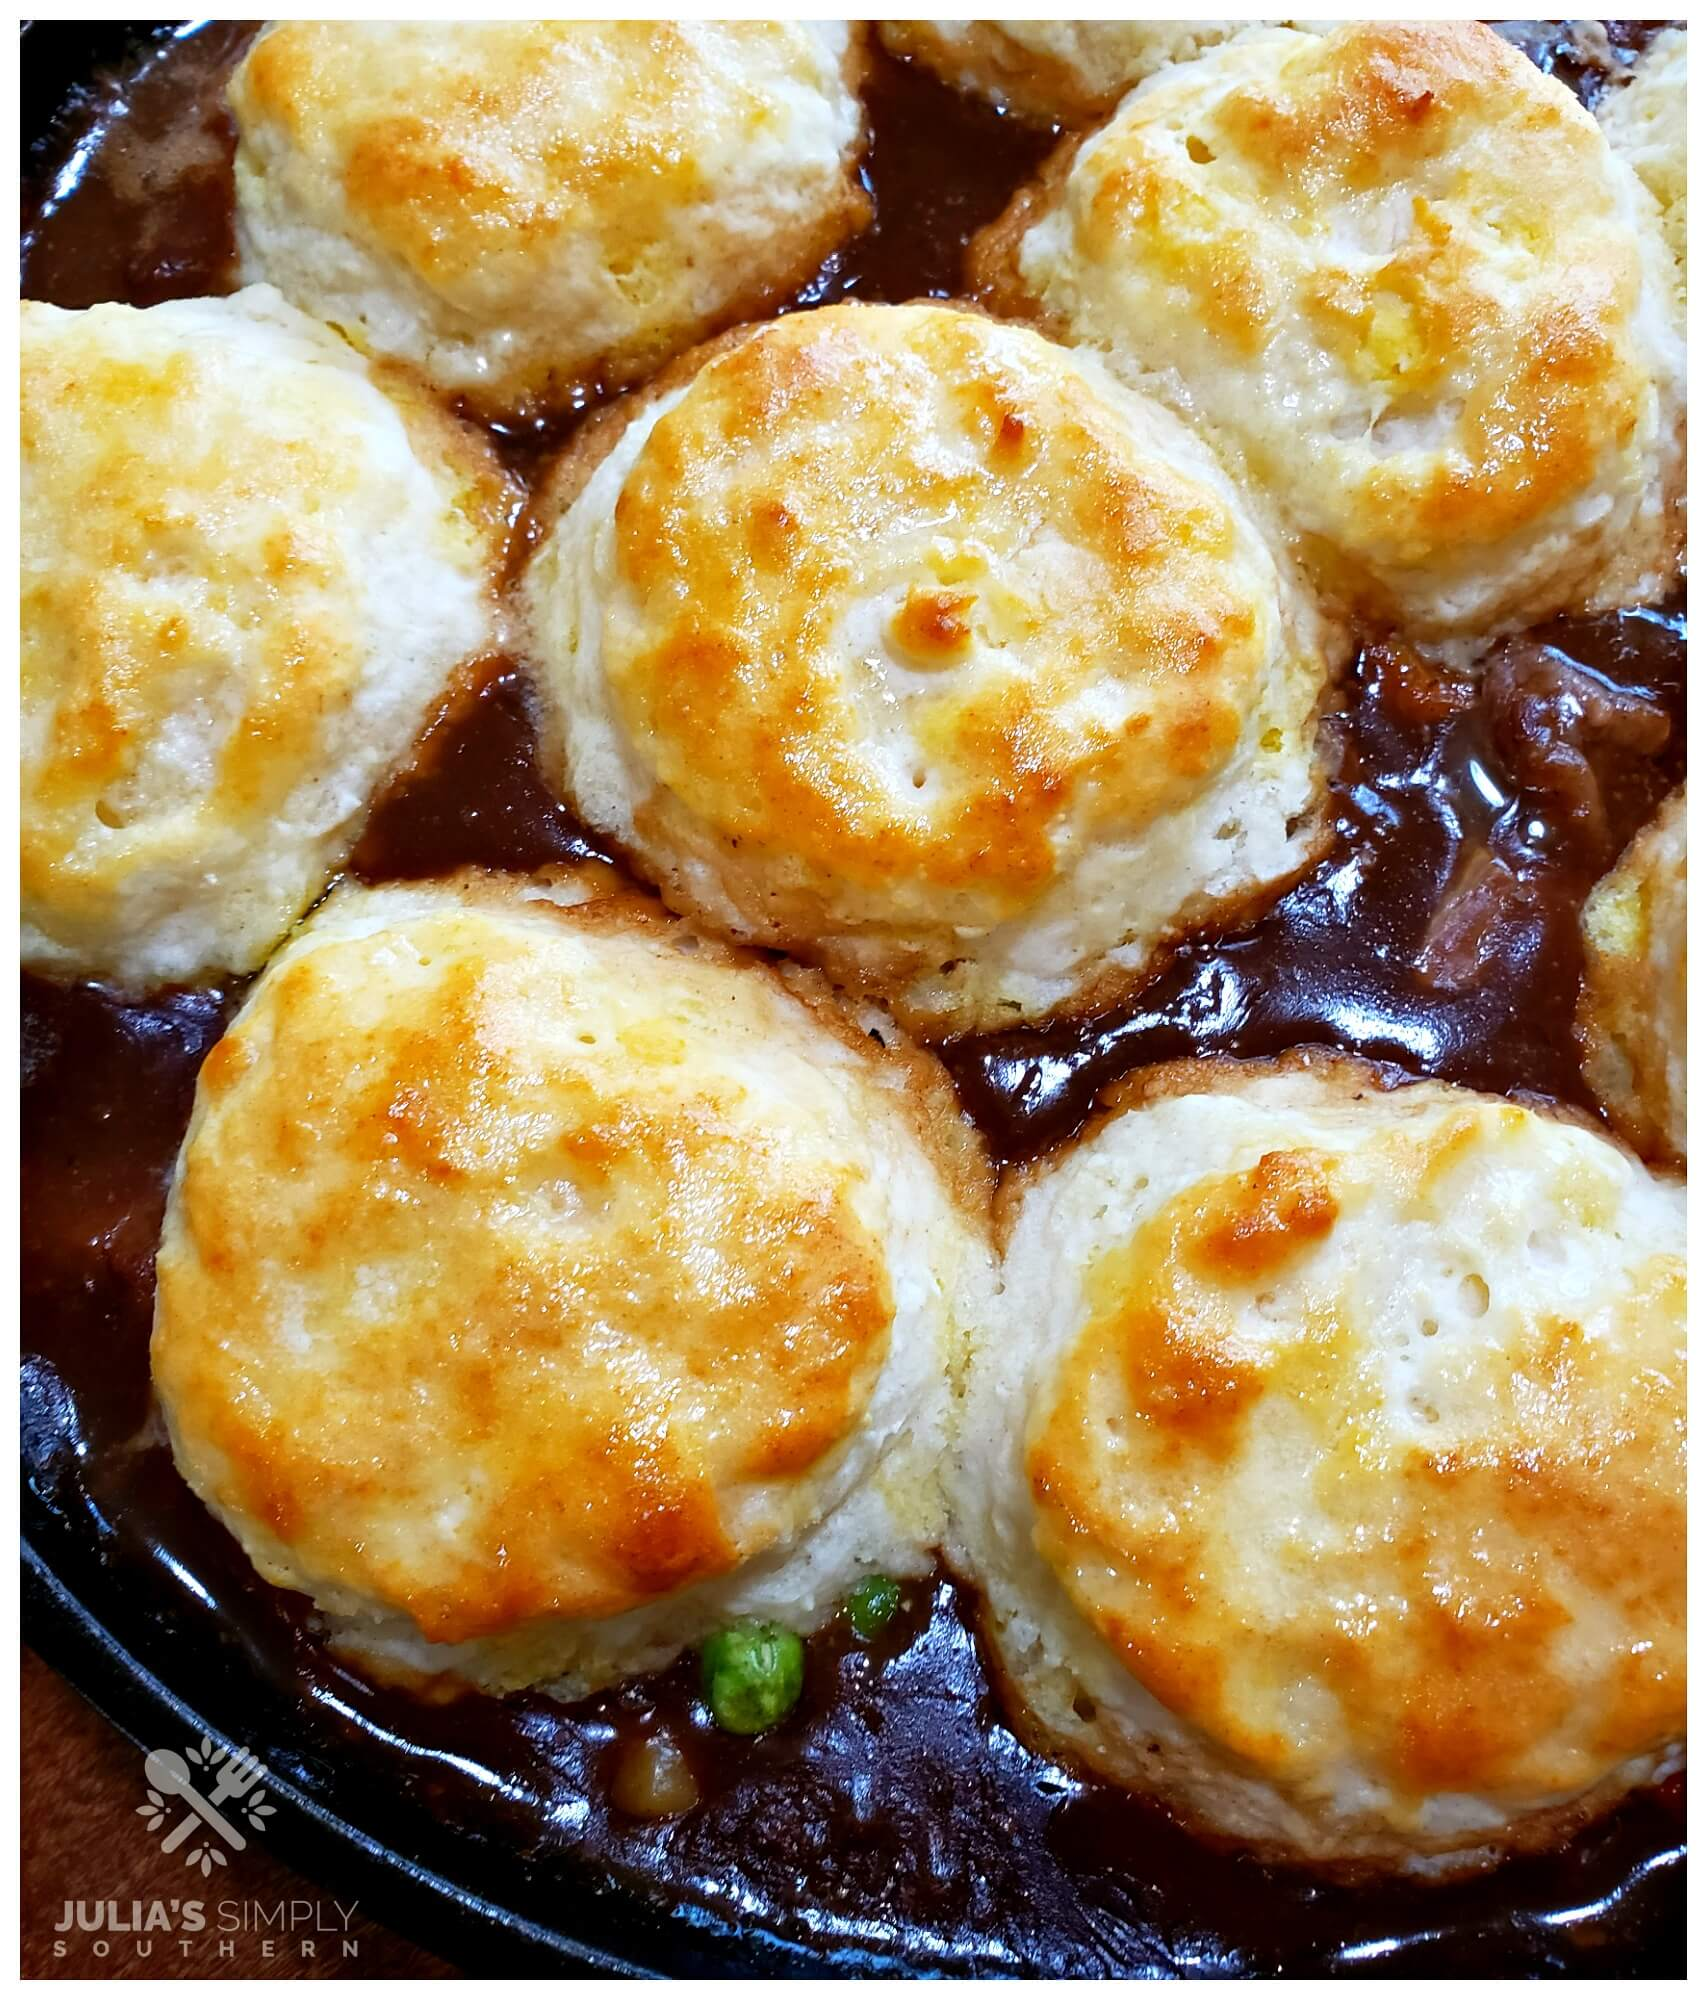 Biscuit Topped Beef Pot Pie by Julia's Simply Southern - WEEKEND POTLUCK 462